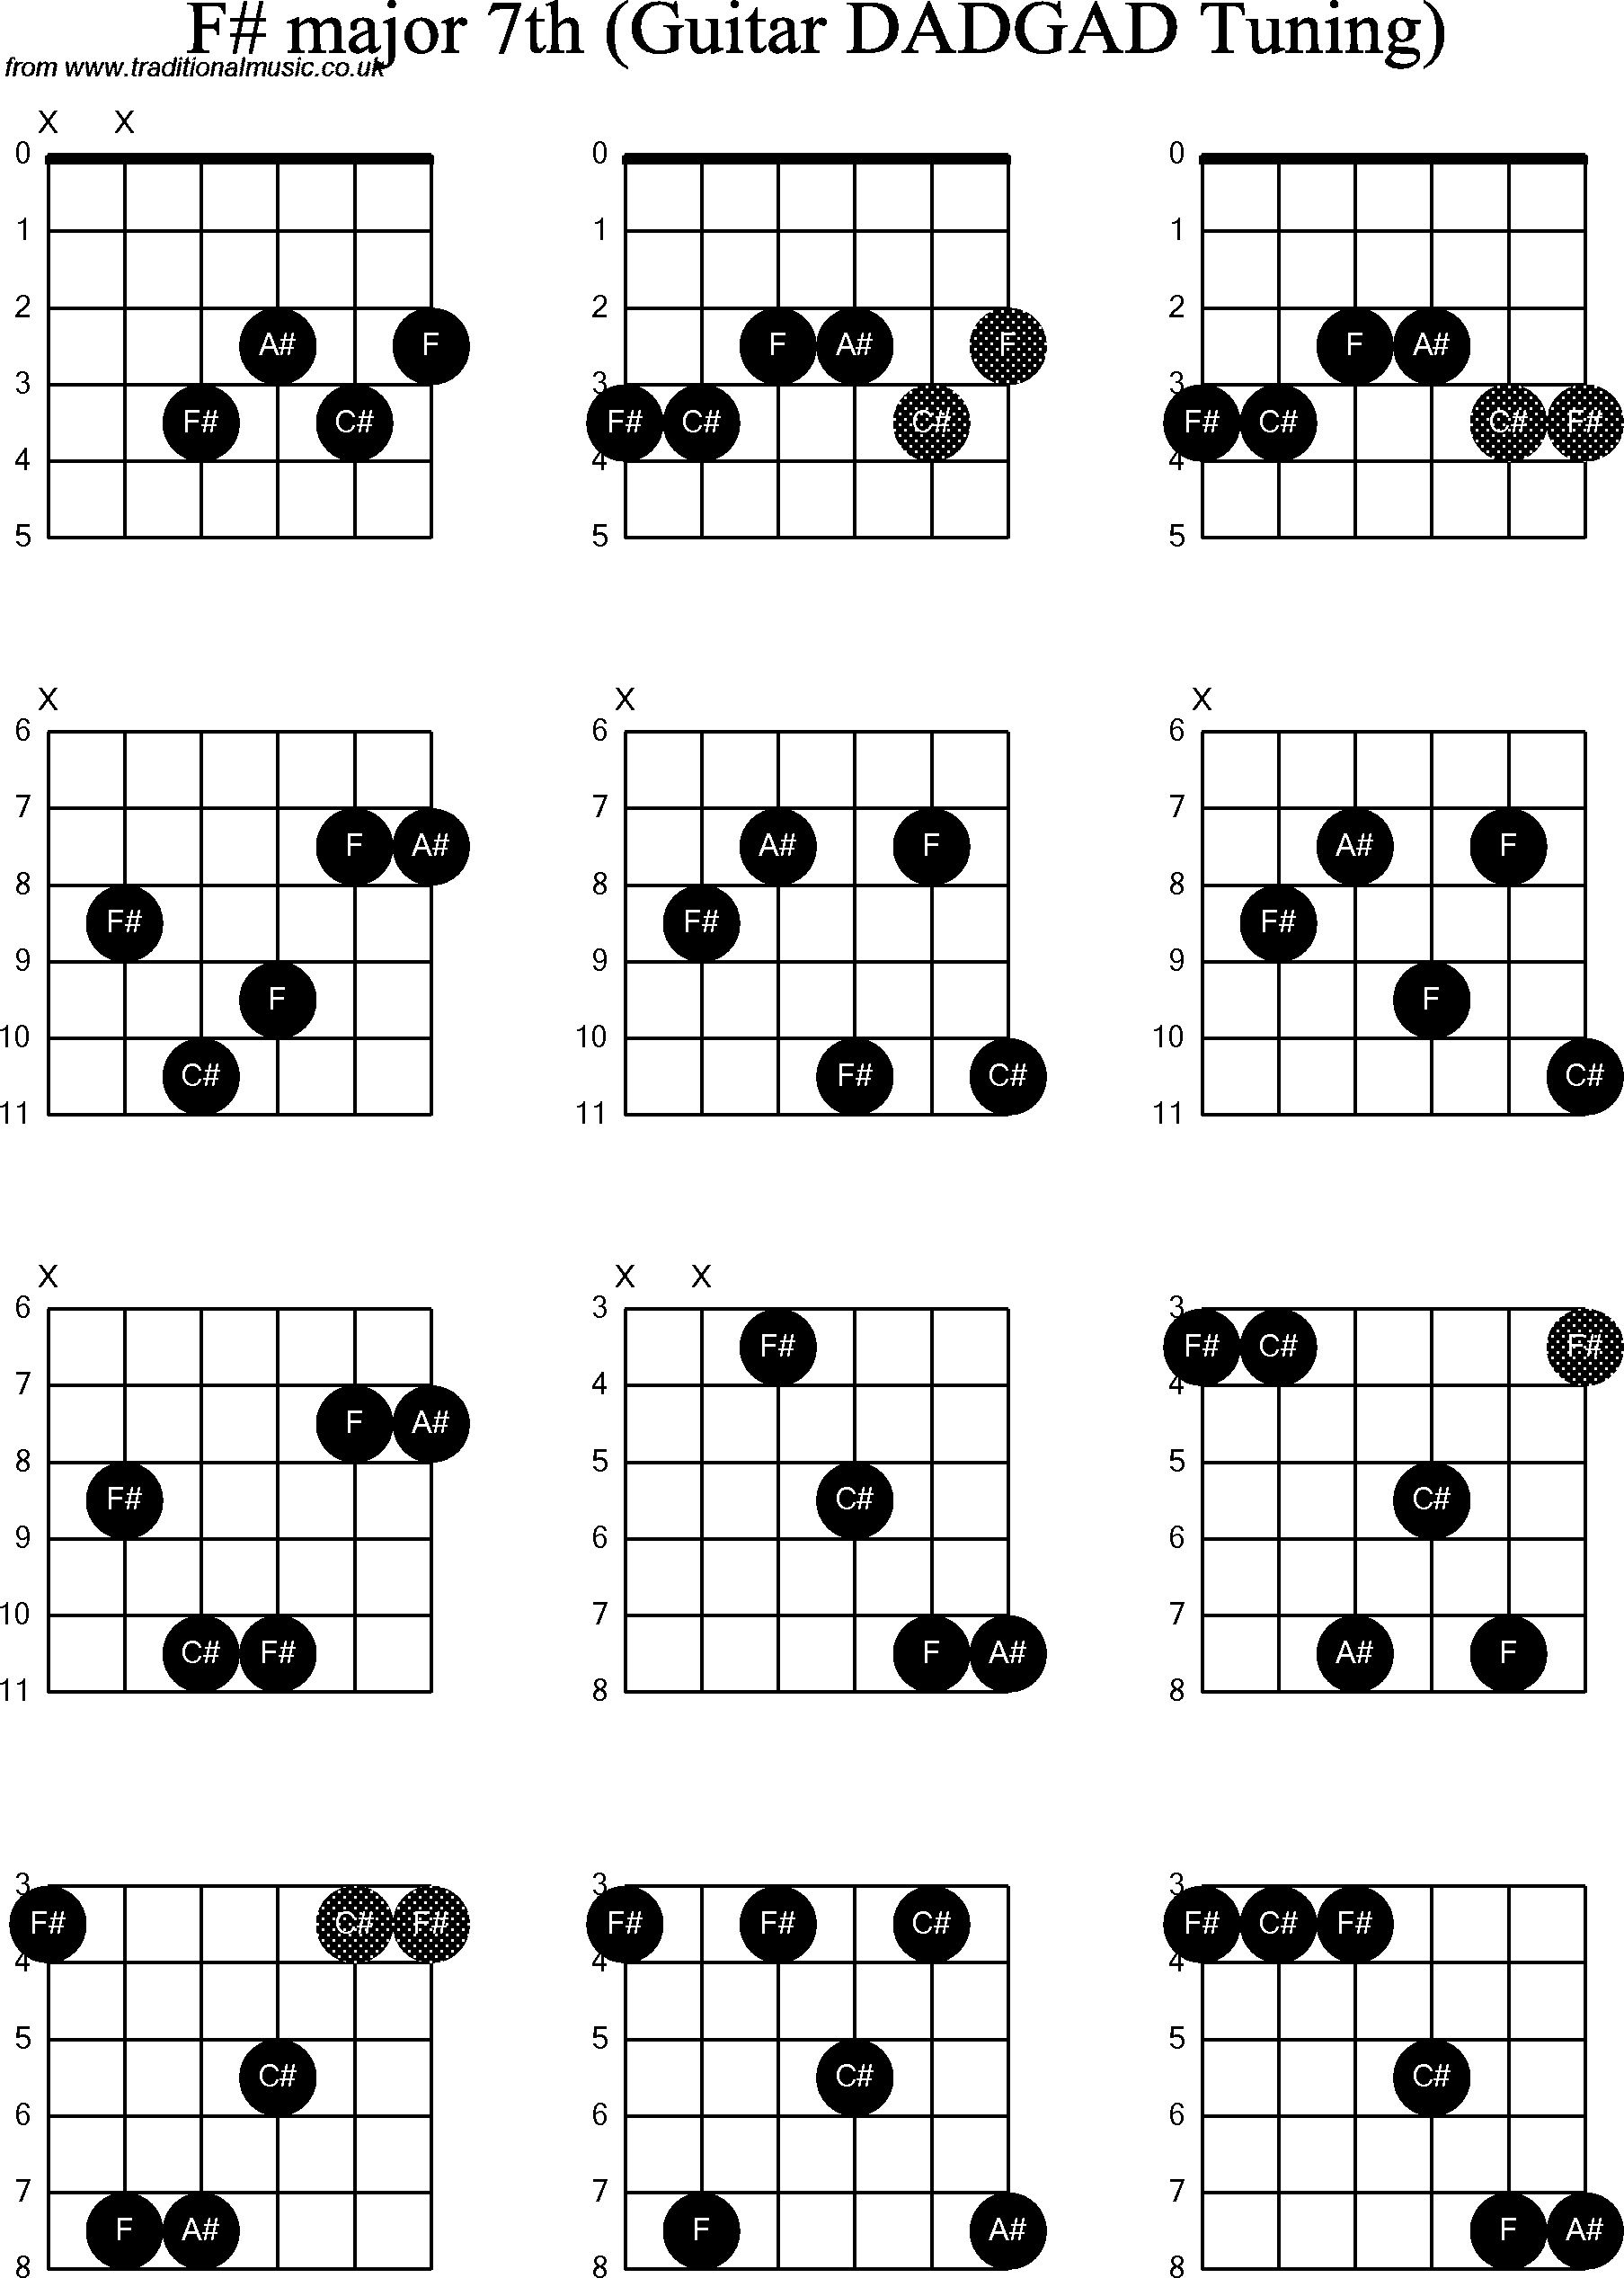 Chord Diagrams D Modal Guitar Dadgad F Sharp Major7th